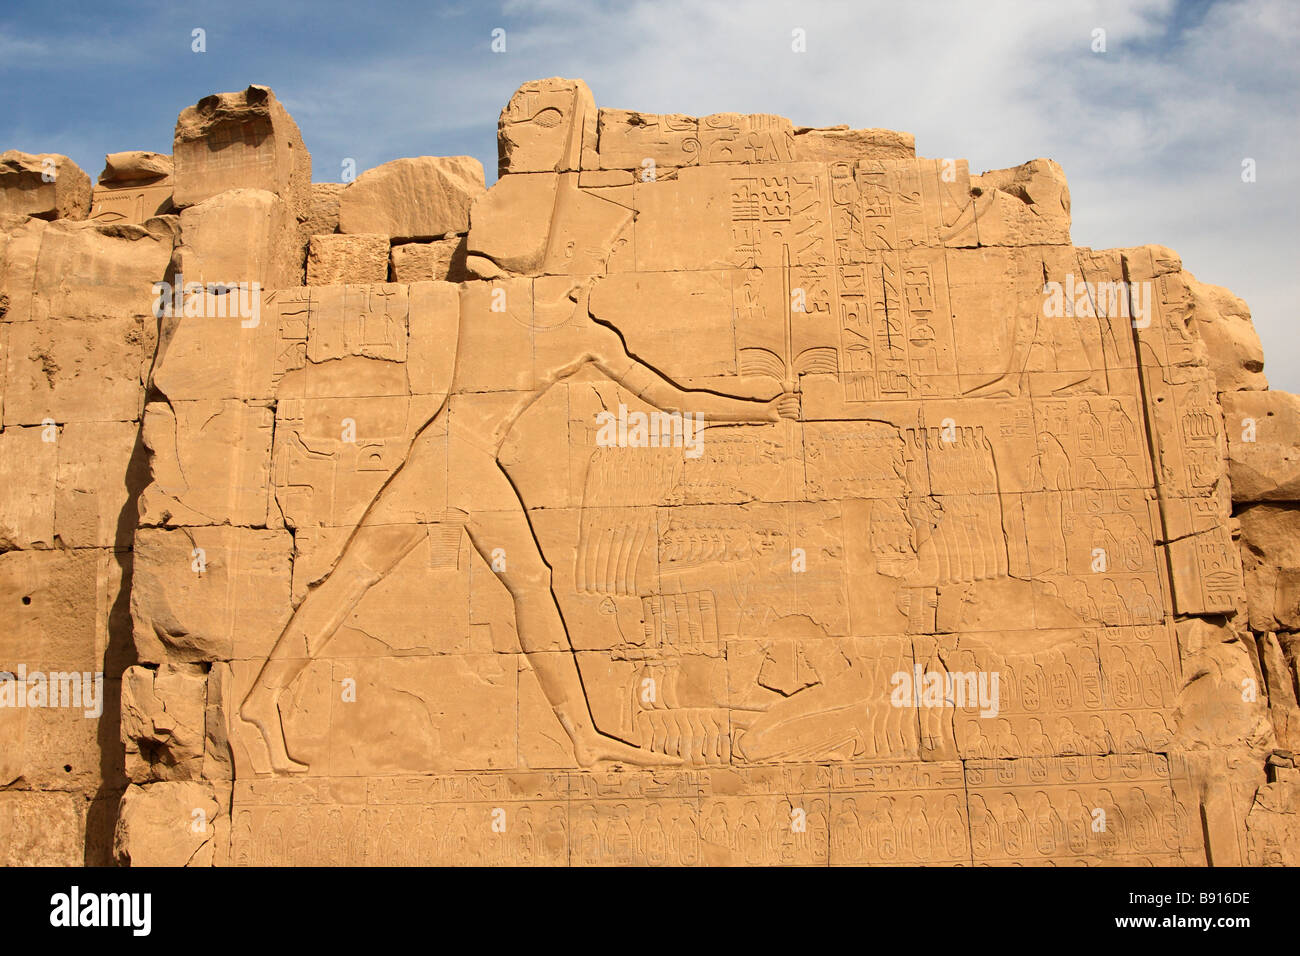 Wall relief showing Tuthmosis III smiting his enemies carved on Seventh Pylon, Karnak Temple, Luxor, Egypt - Stock Image